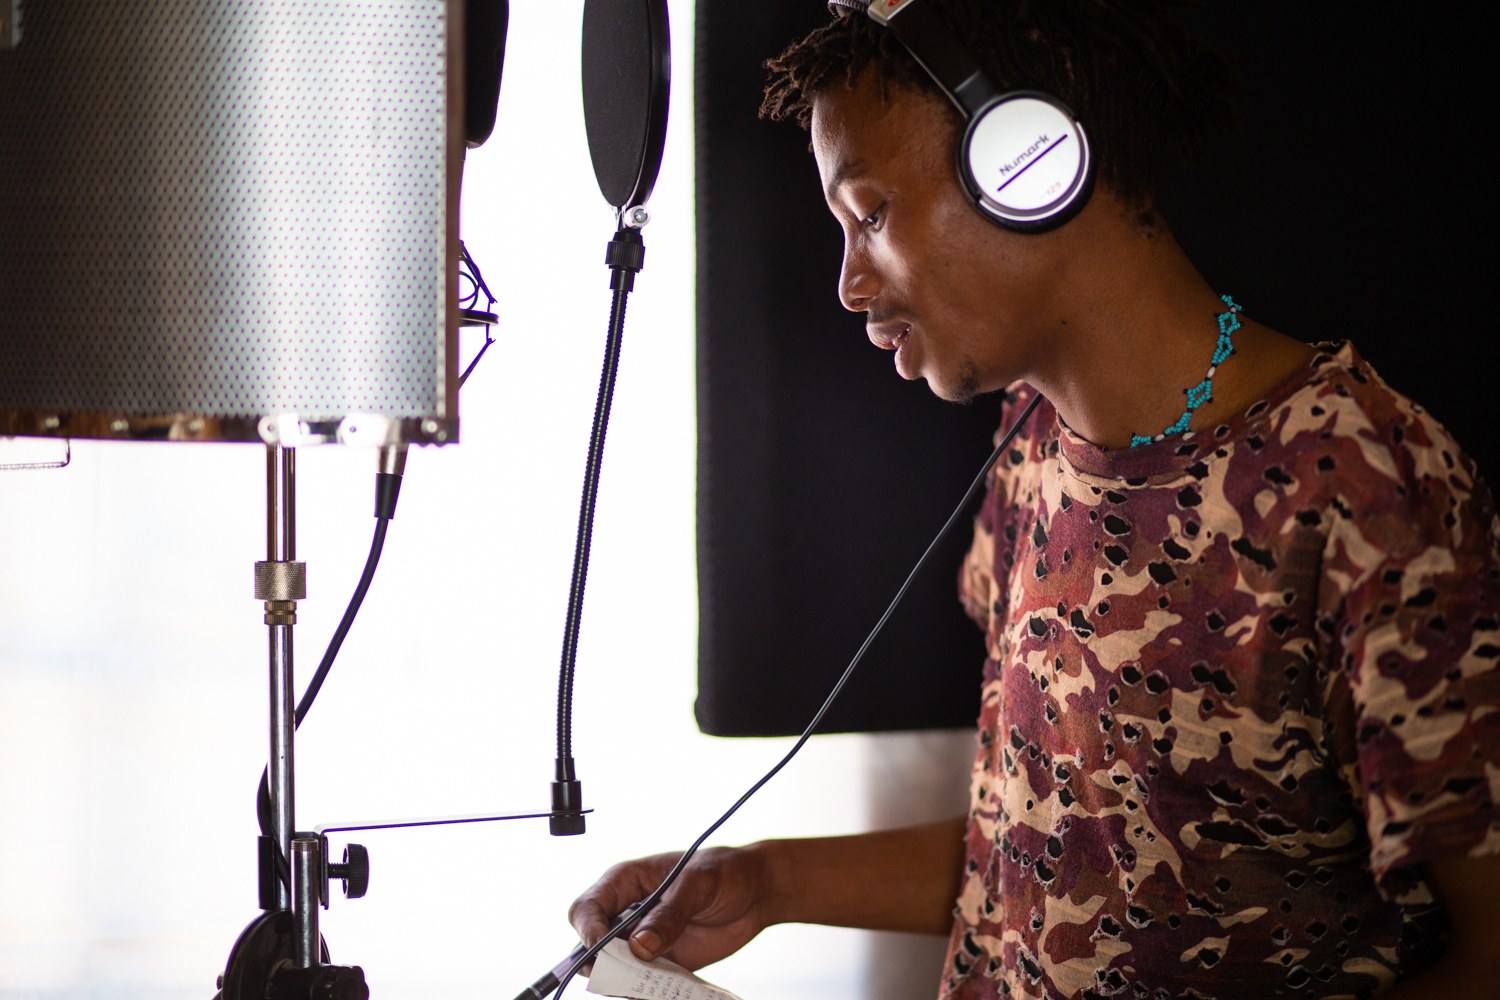 Alphynho prepares to record a new song during a recording session in Ghanzi. He sings in Naro, the native language of the San in the region west of the Kalahari, and uses many traditional musical elements. He hopes to preserve and celebrate his culture and language through his music.